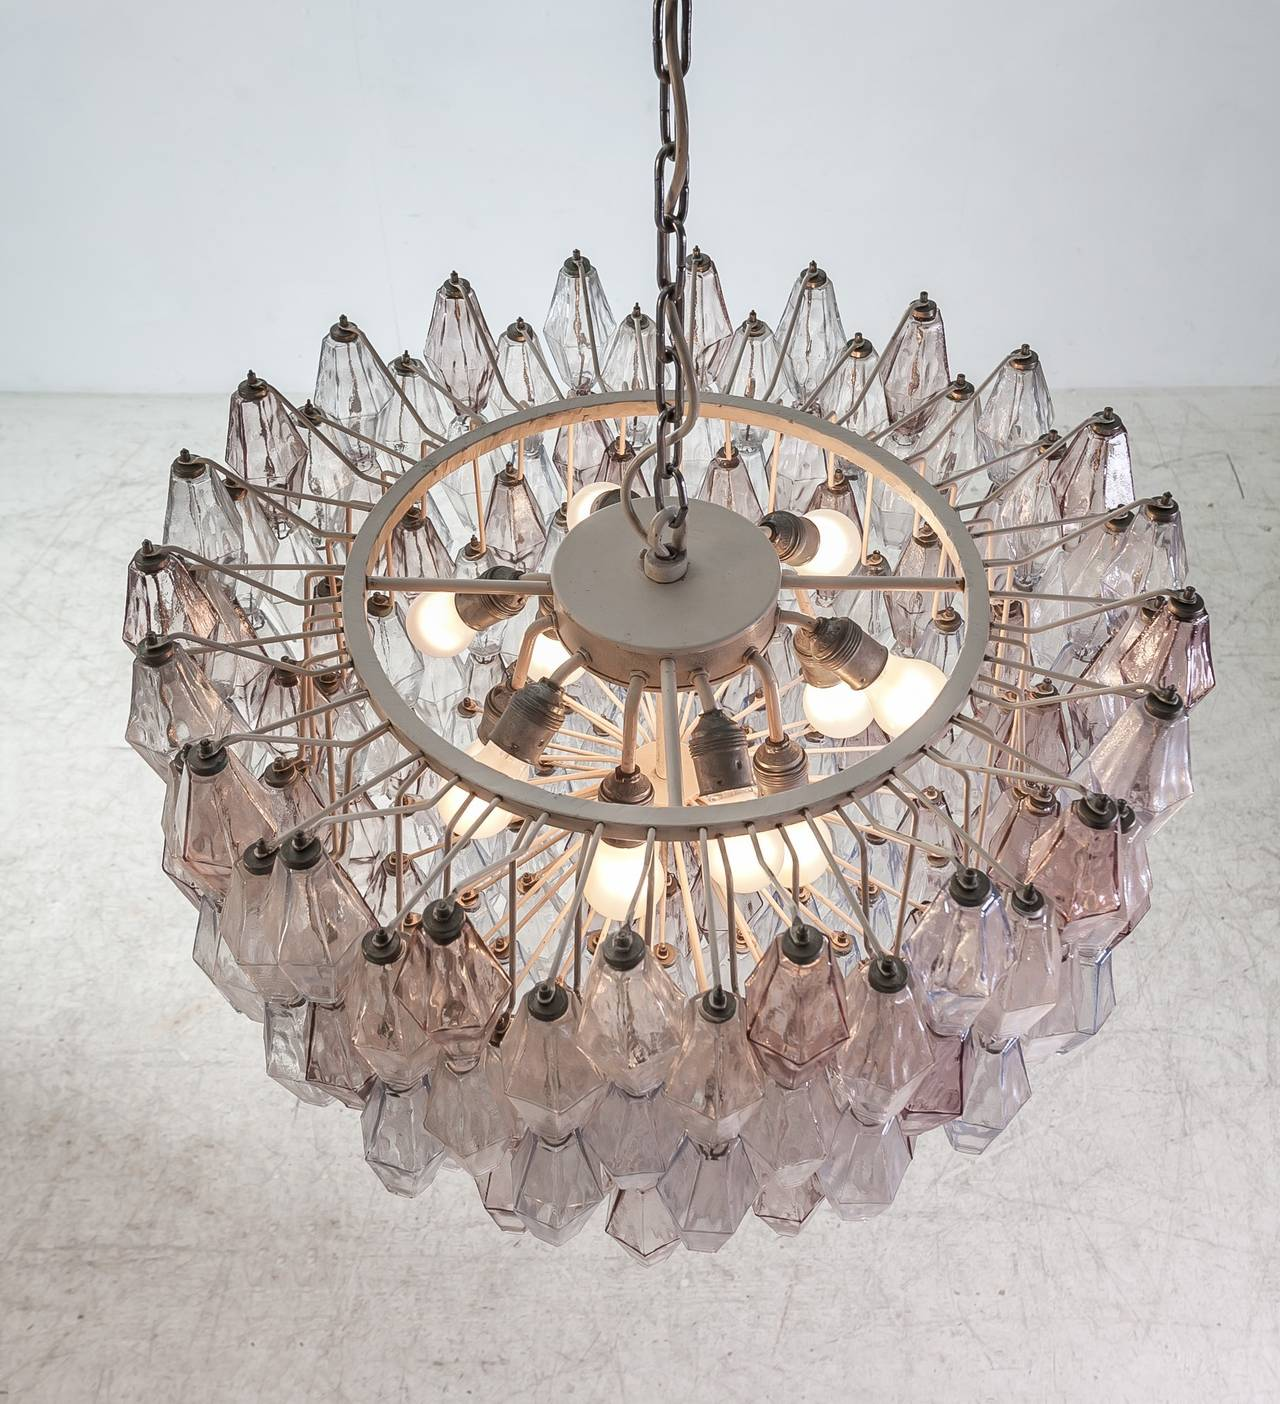 Pair of Carlo Scarpa Extra Large 245 Murano Glass Pieces 'Poliedri' Chandeliers For Sale 2